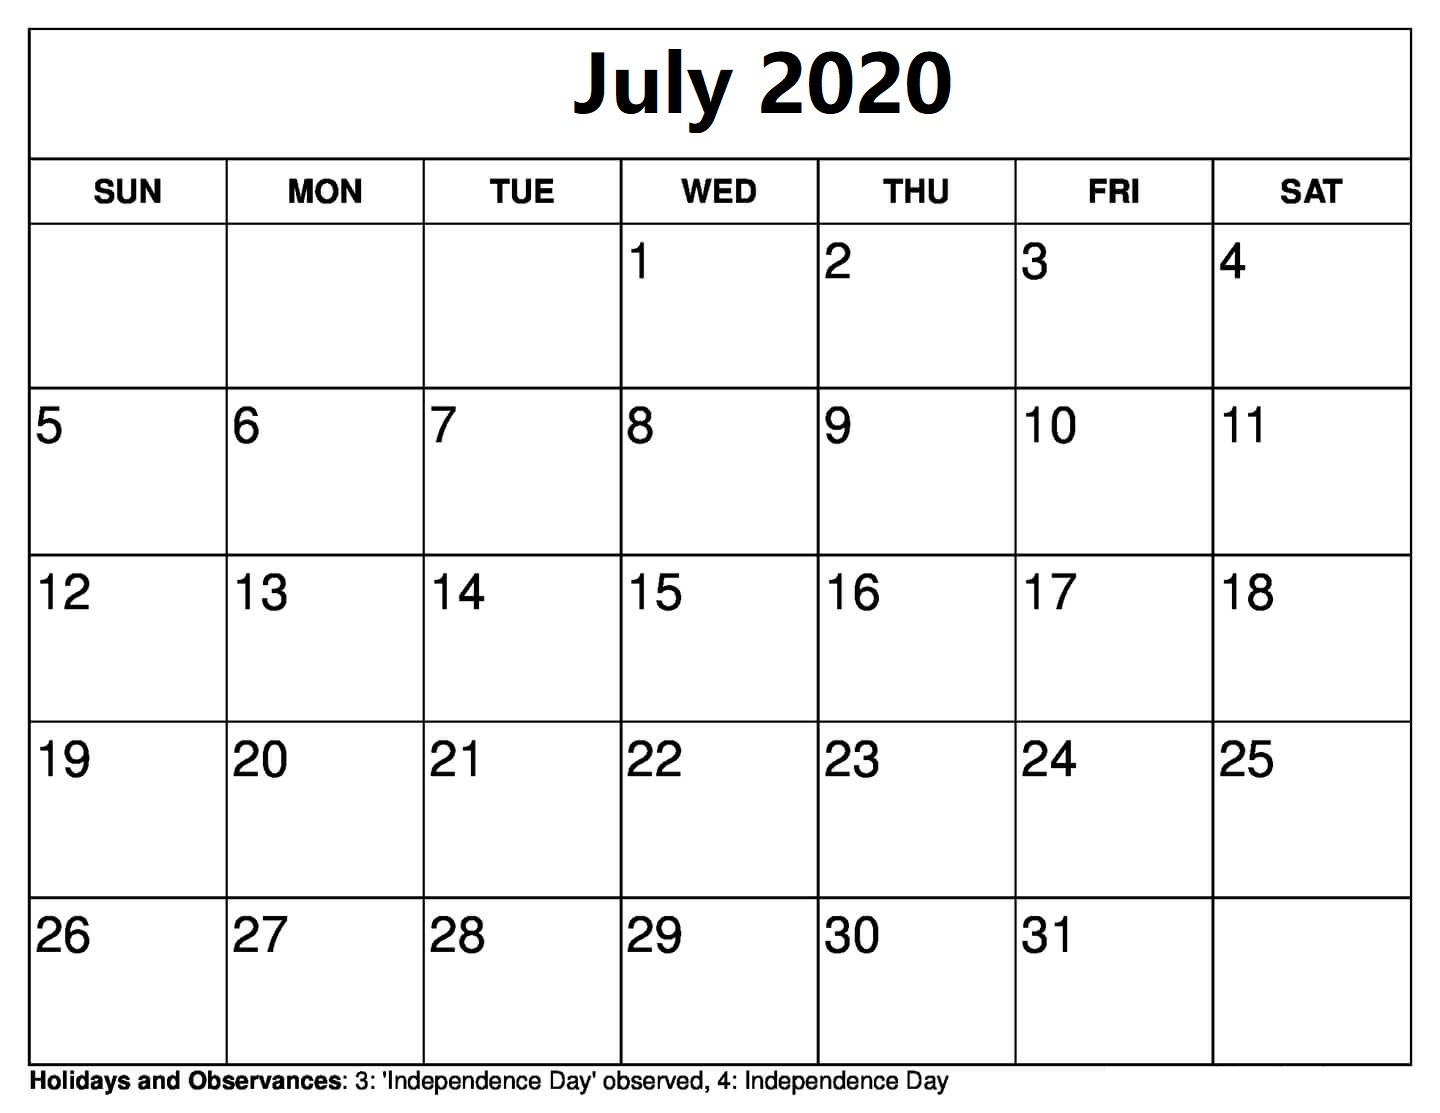 July 2020 Calendar With Holidays